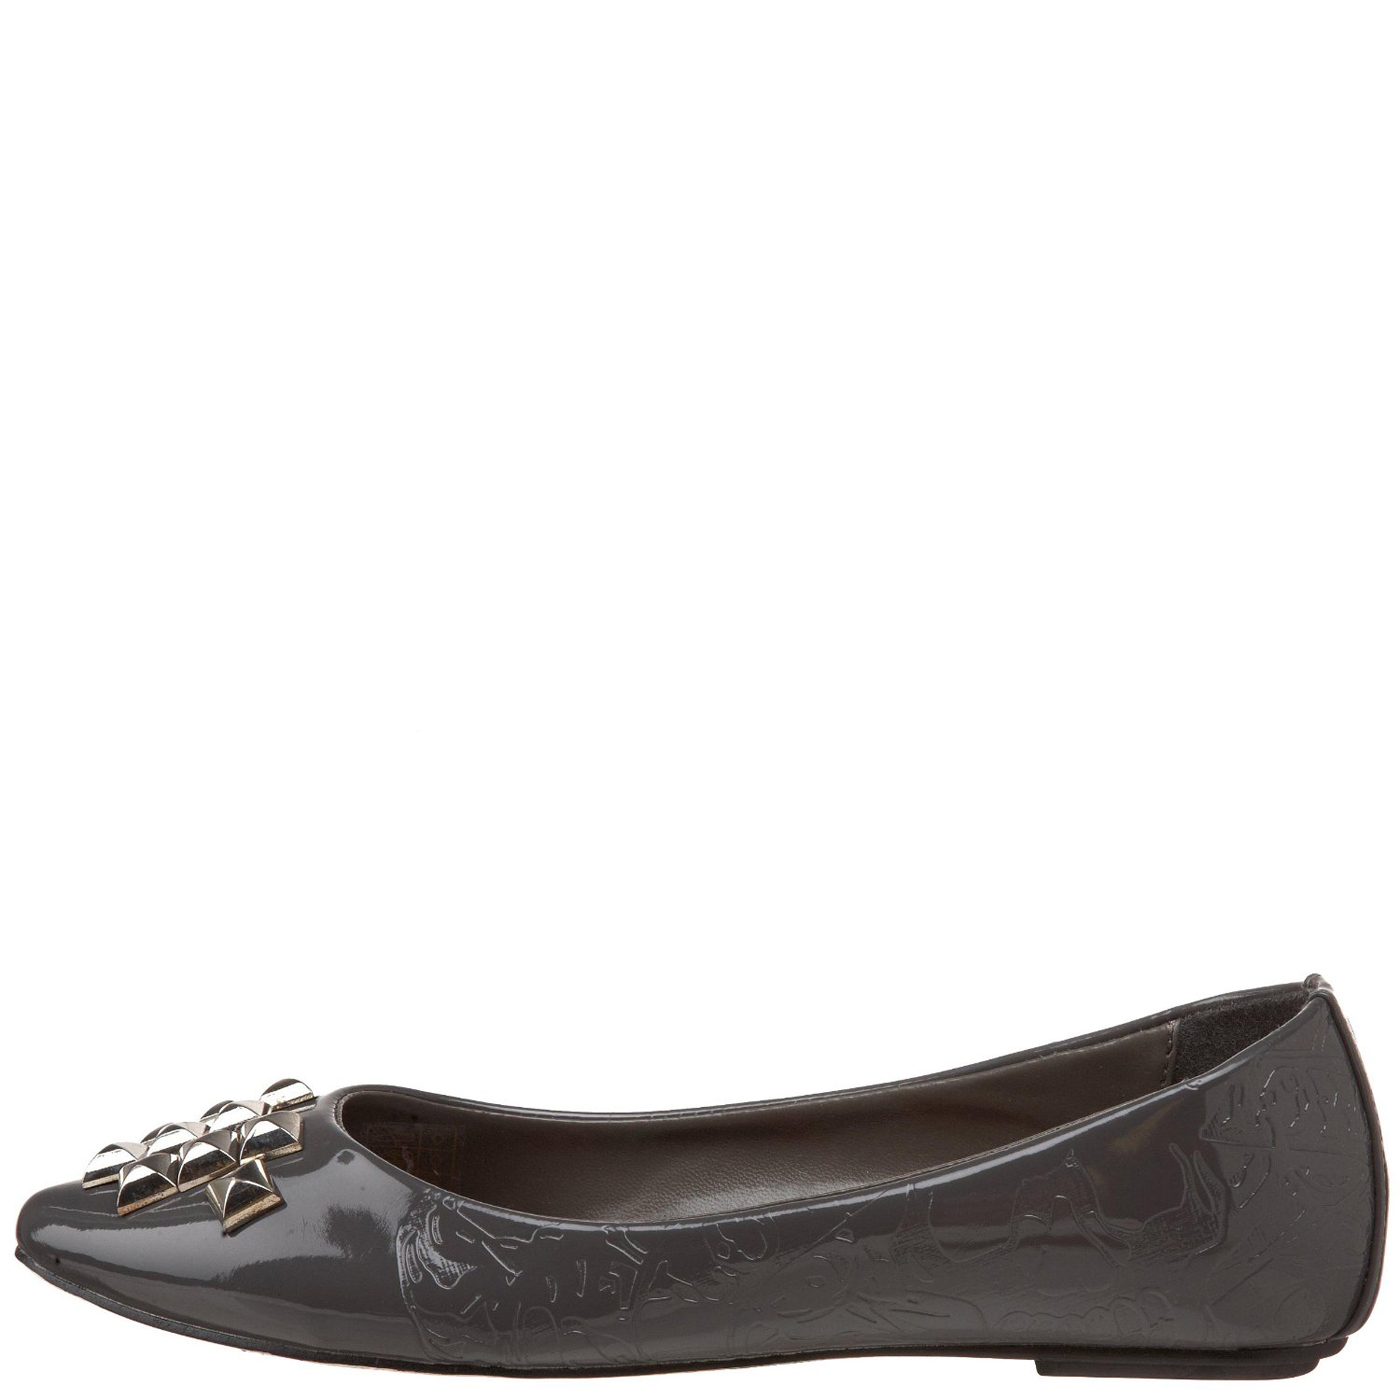 Ed Hardy Caracas Flat Shoe for Women - Grey